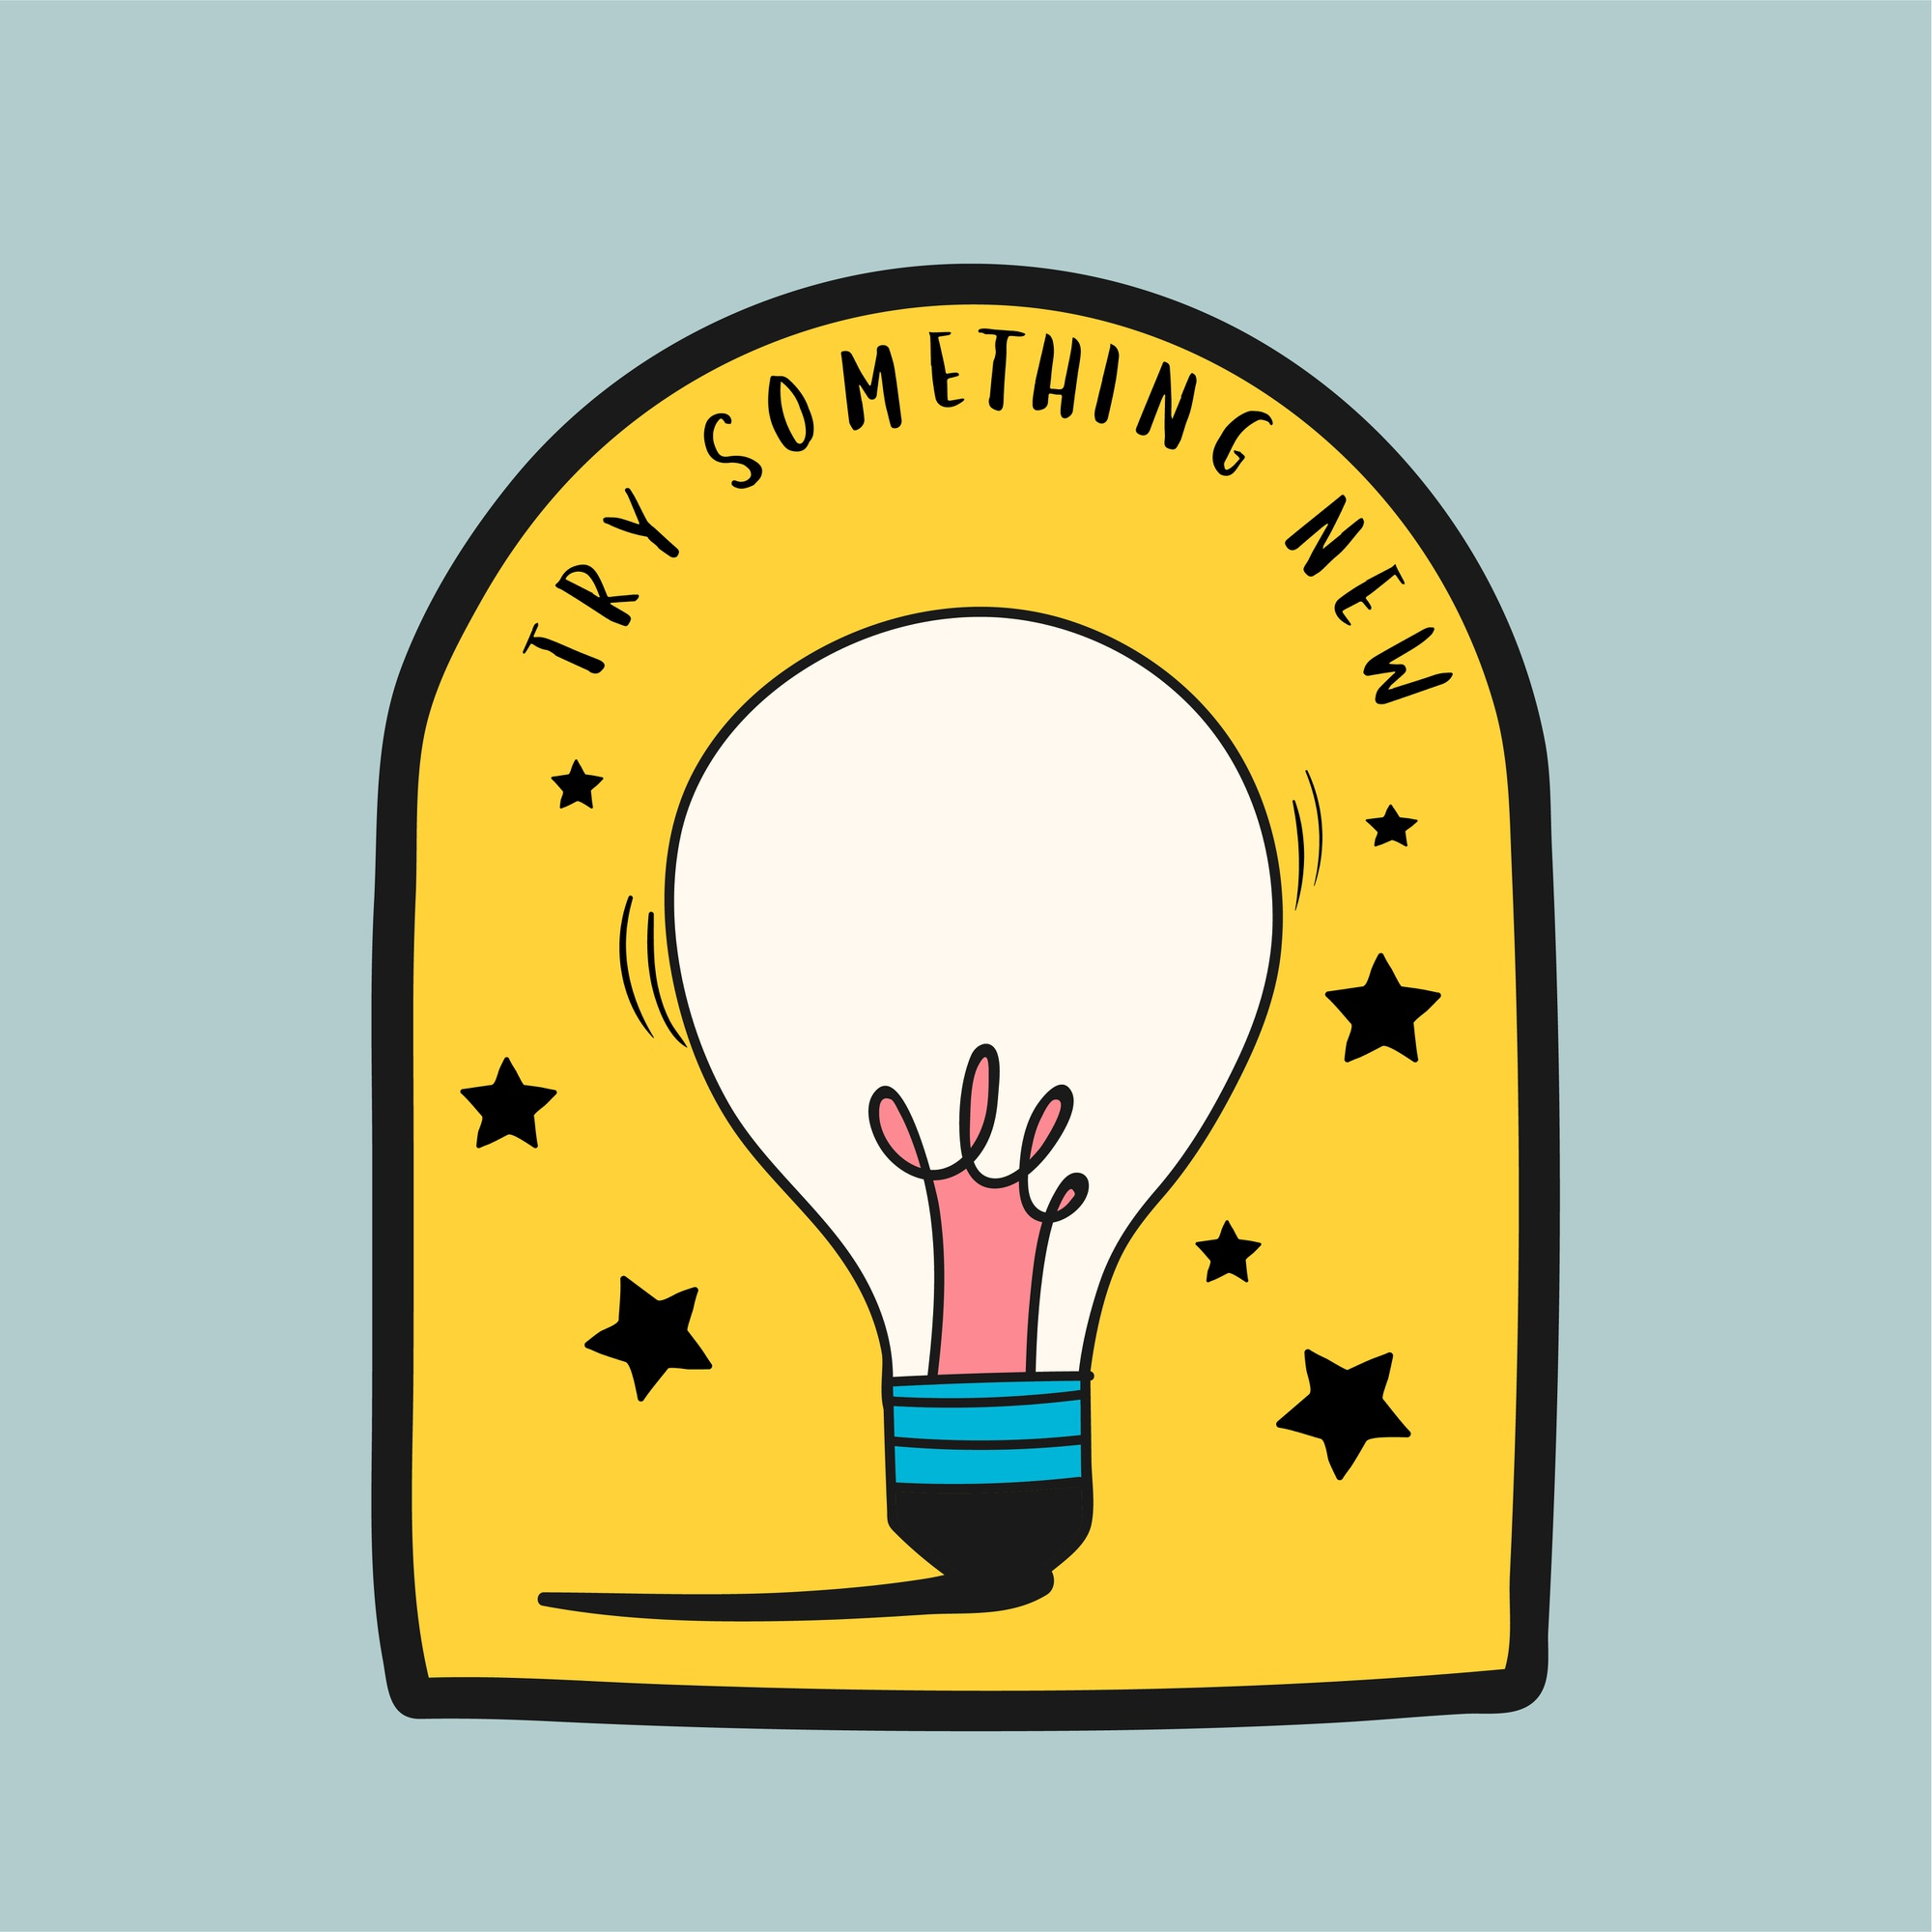 Try something new quote illustration